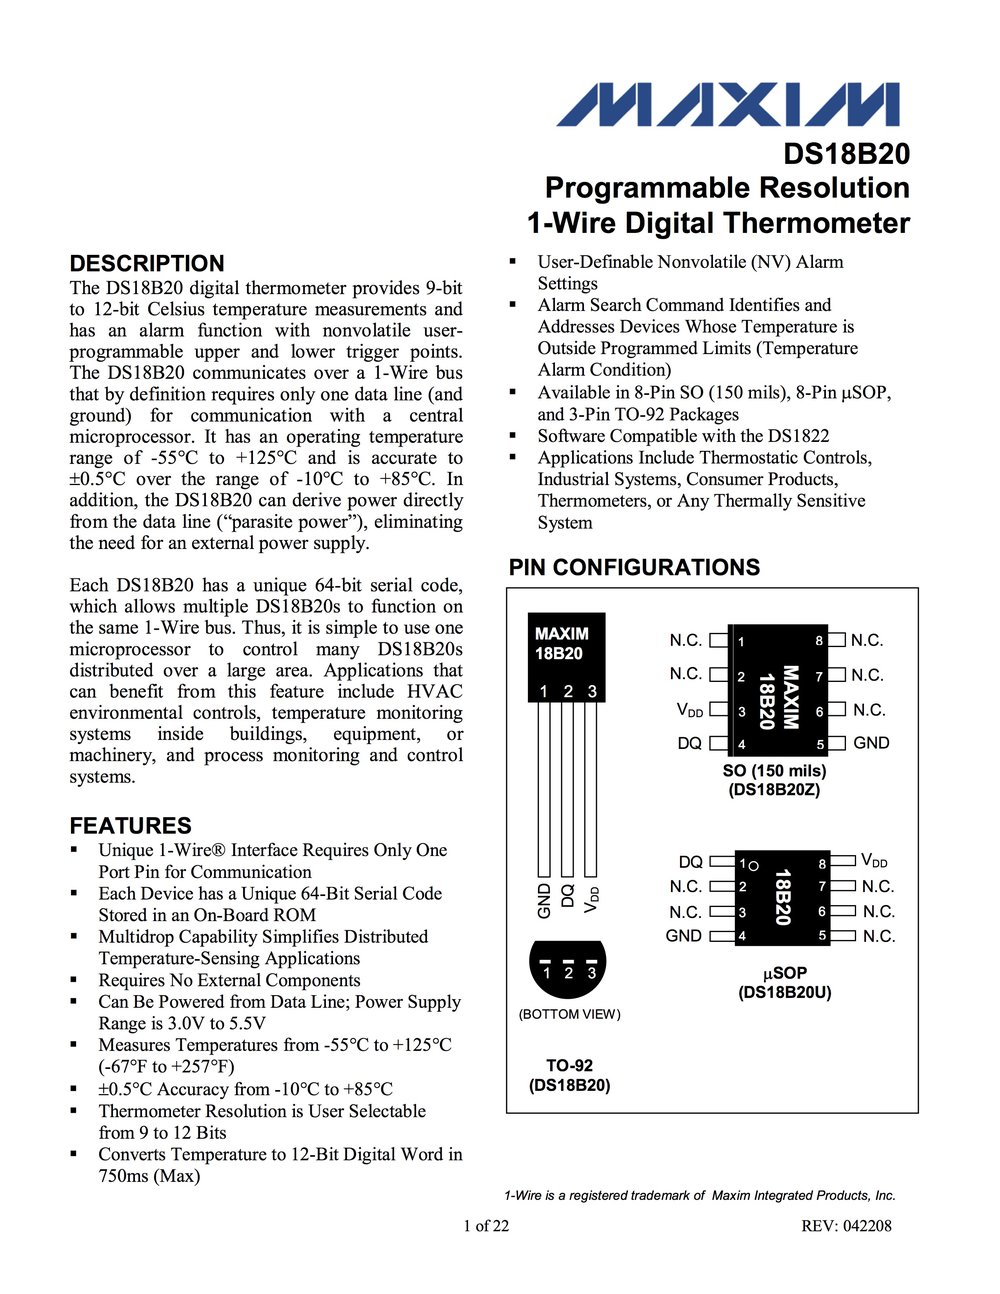 Data sheet for DS18B20 1-wire digital thermometer (  22 page PDF, 262 KB  )